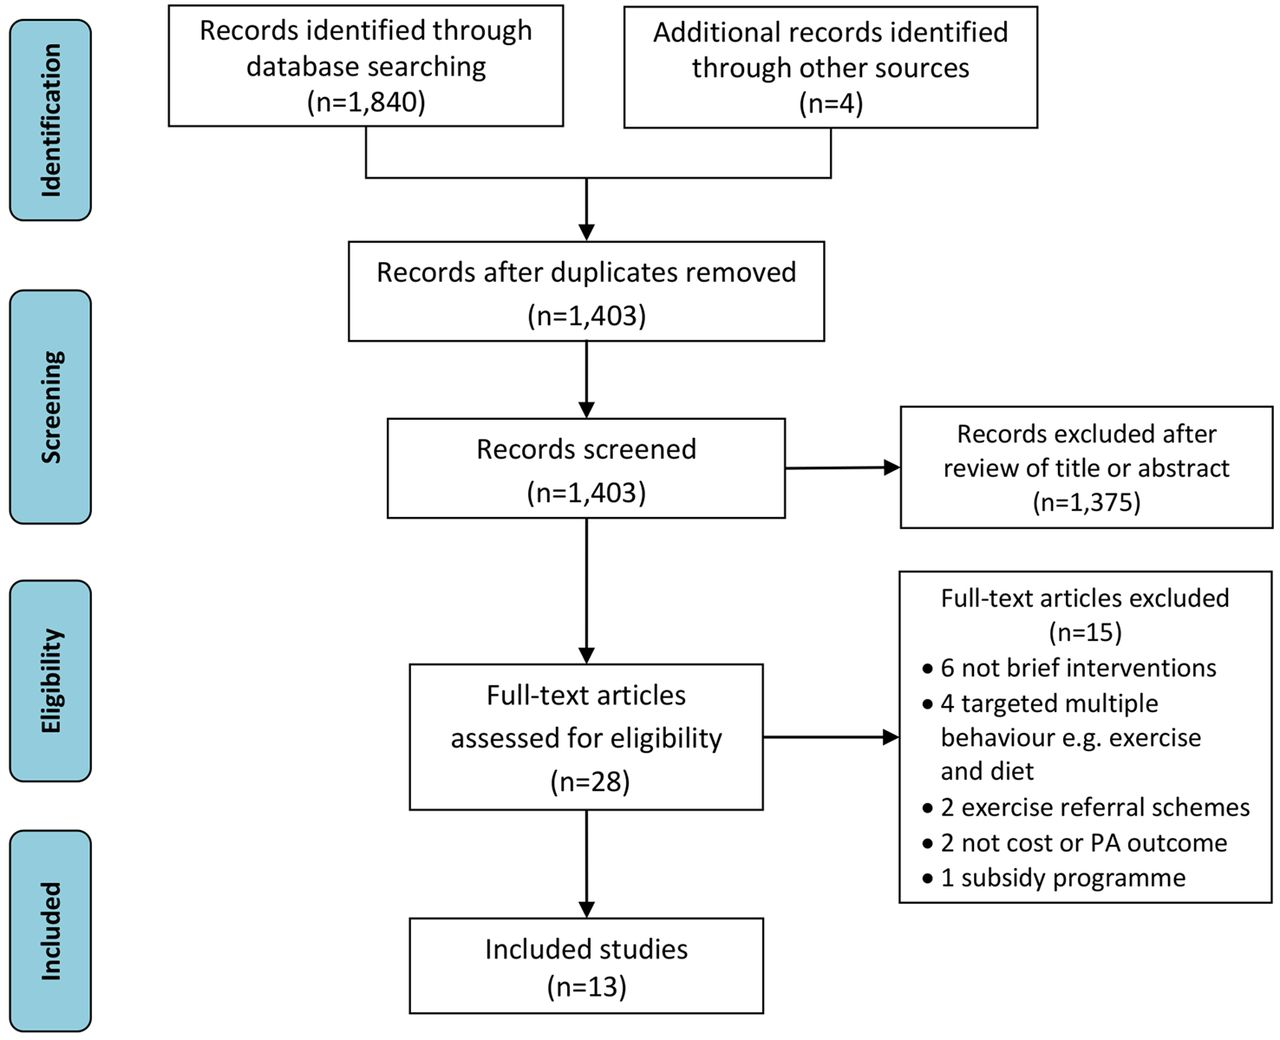 Brief Intervention May Prevent >> Are Brief Interventions To Increase Physical Activity Cost